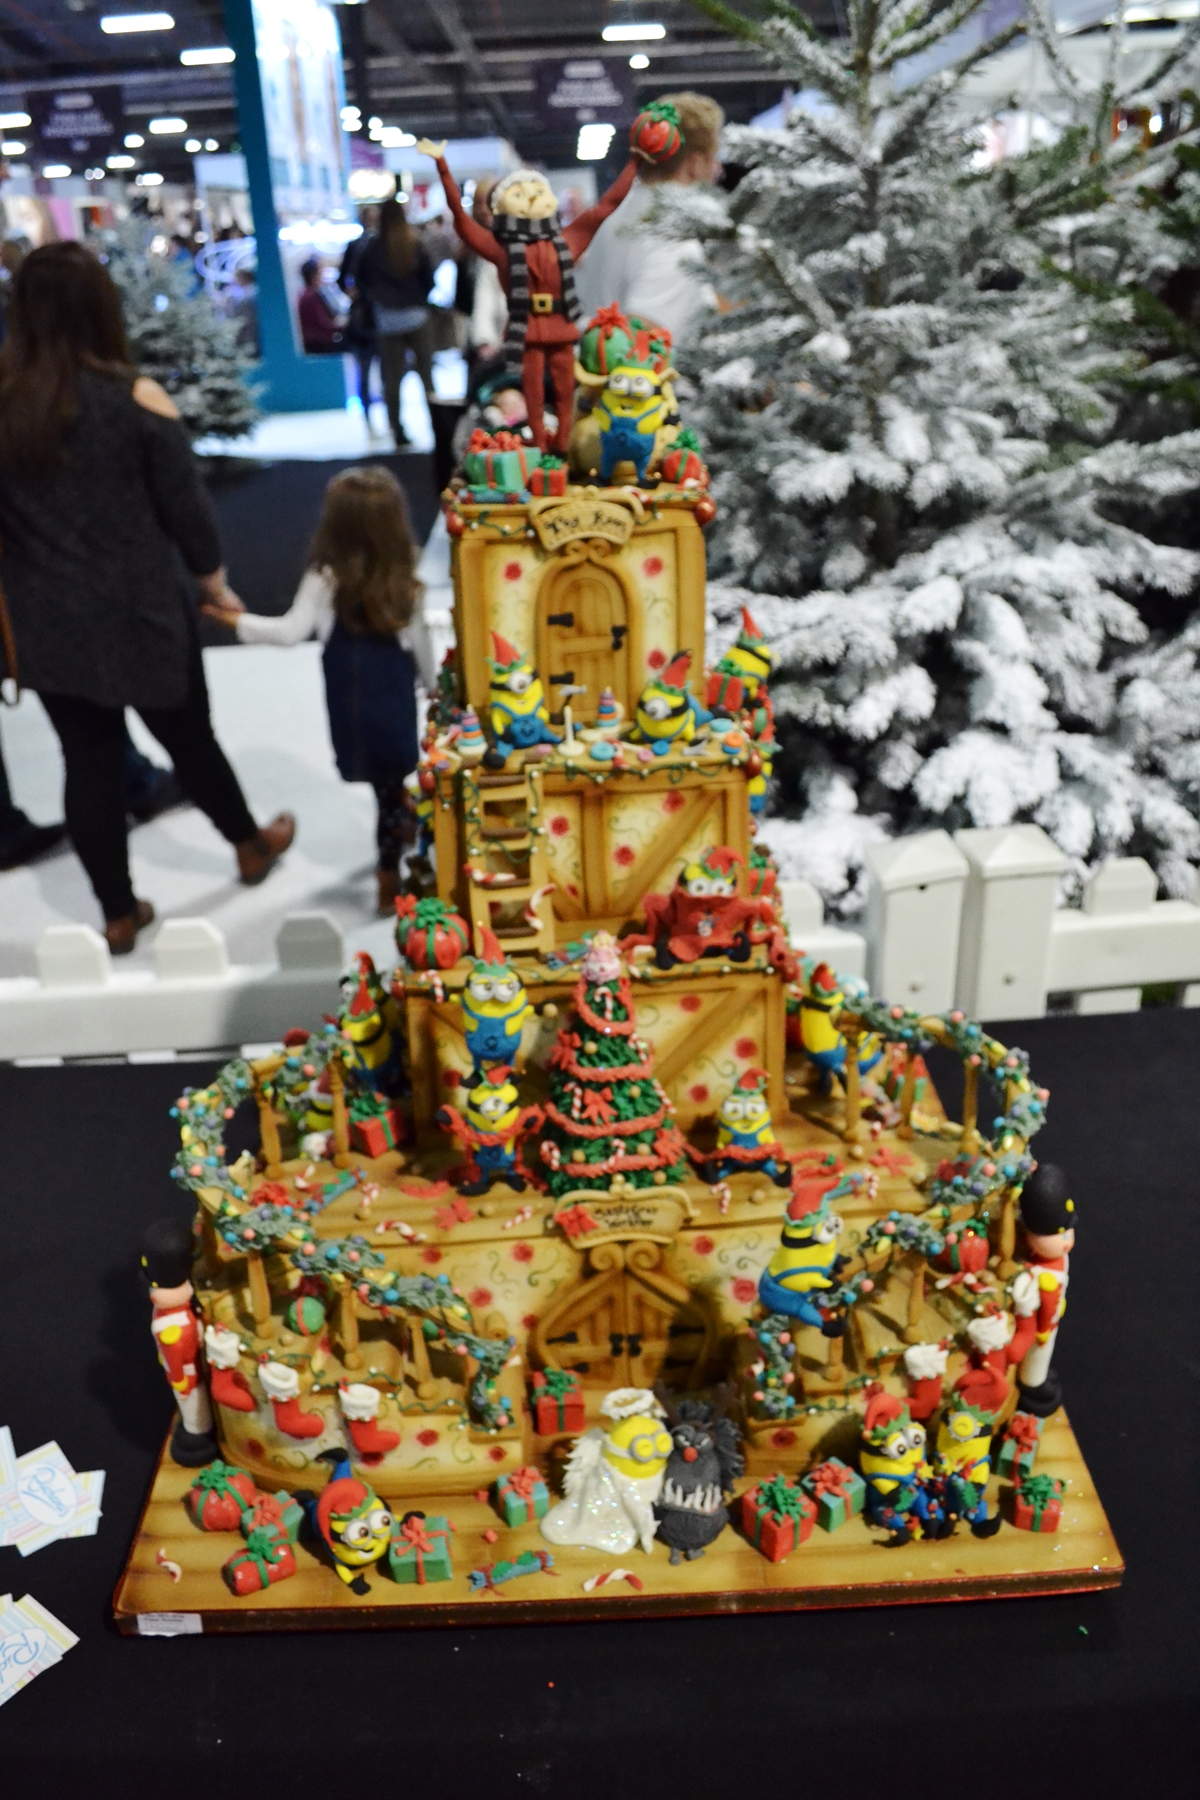 cake and bake show event city manchester 2016 gingerbread house ccake